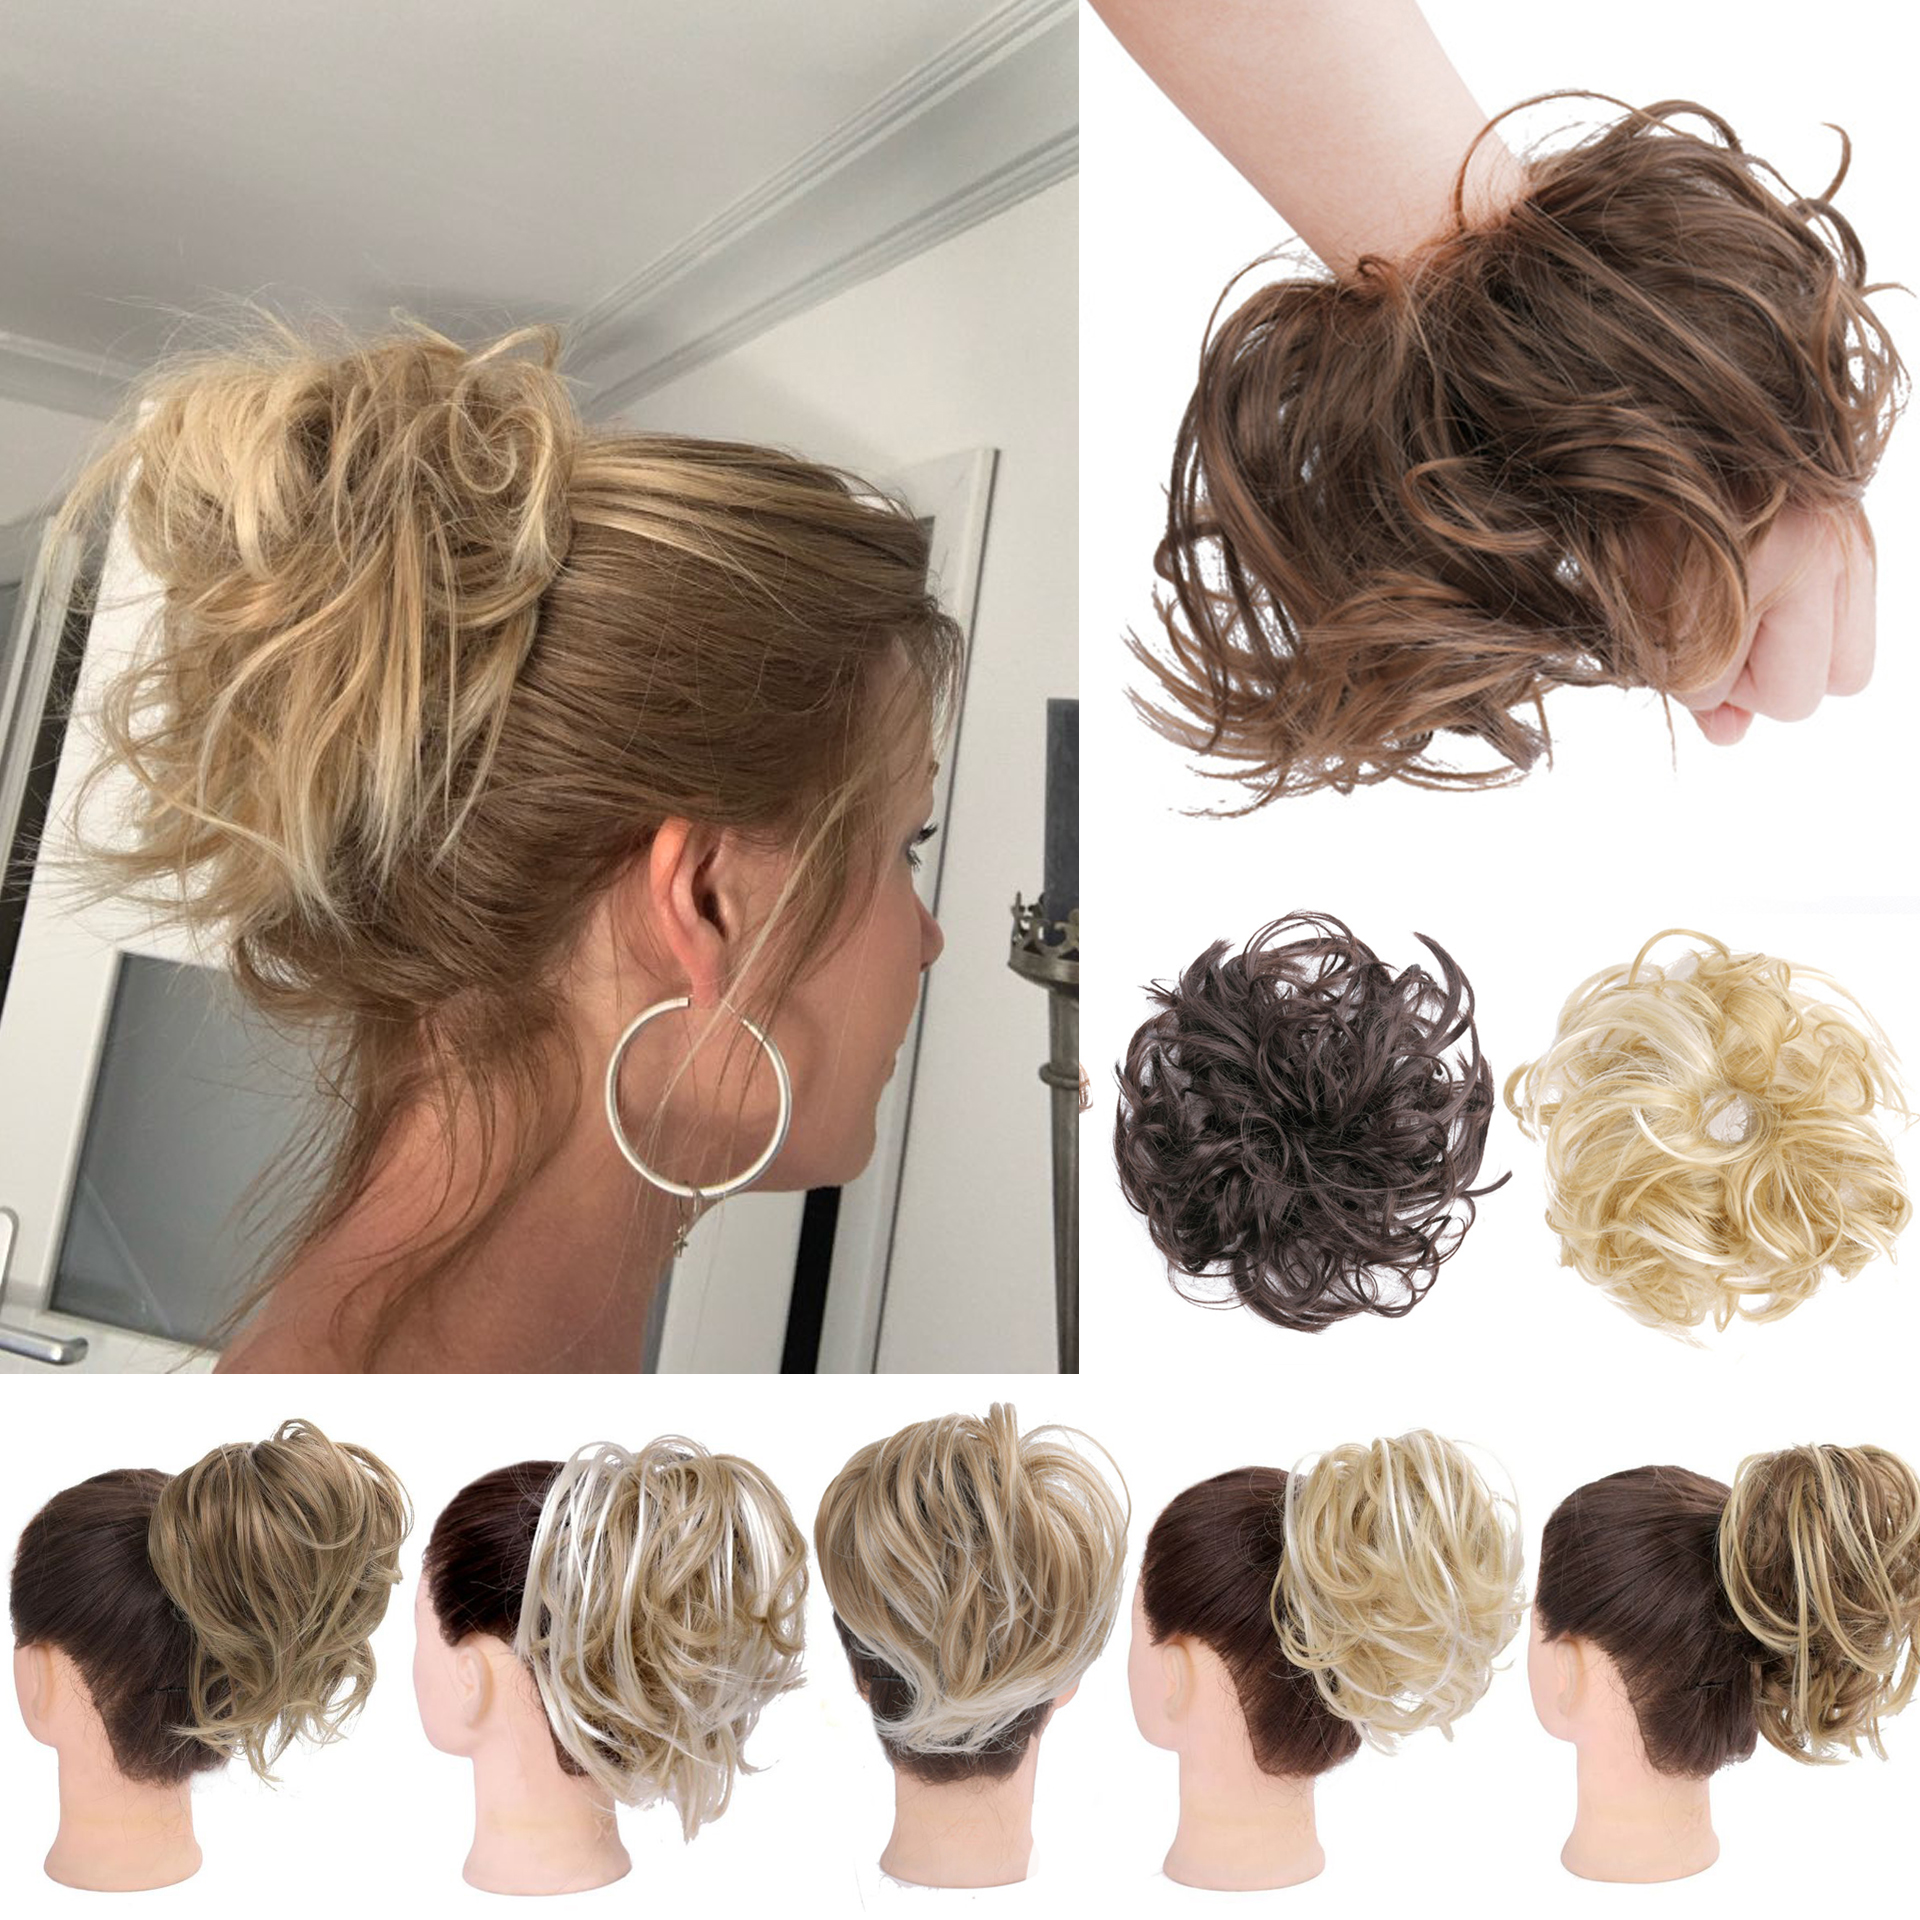 2020 Newest Fashion Curly Messy Hair Ring Scrunchie Ponytail Holder HeadBands Headwear HairBands Hair Accessories Styling Tool